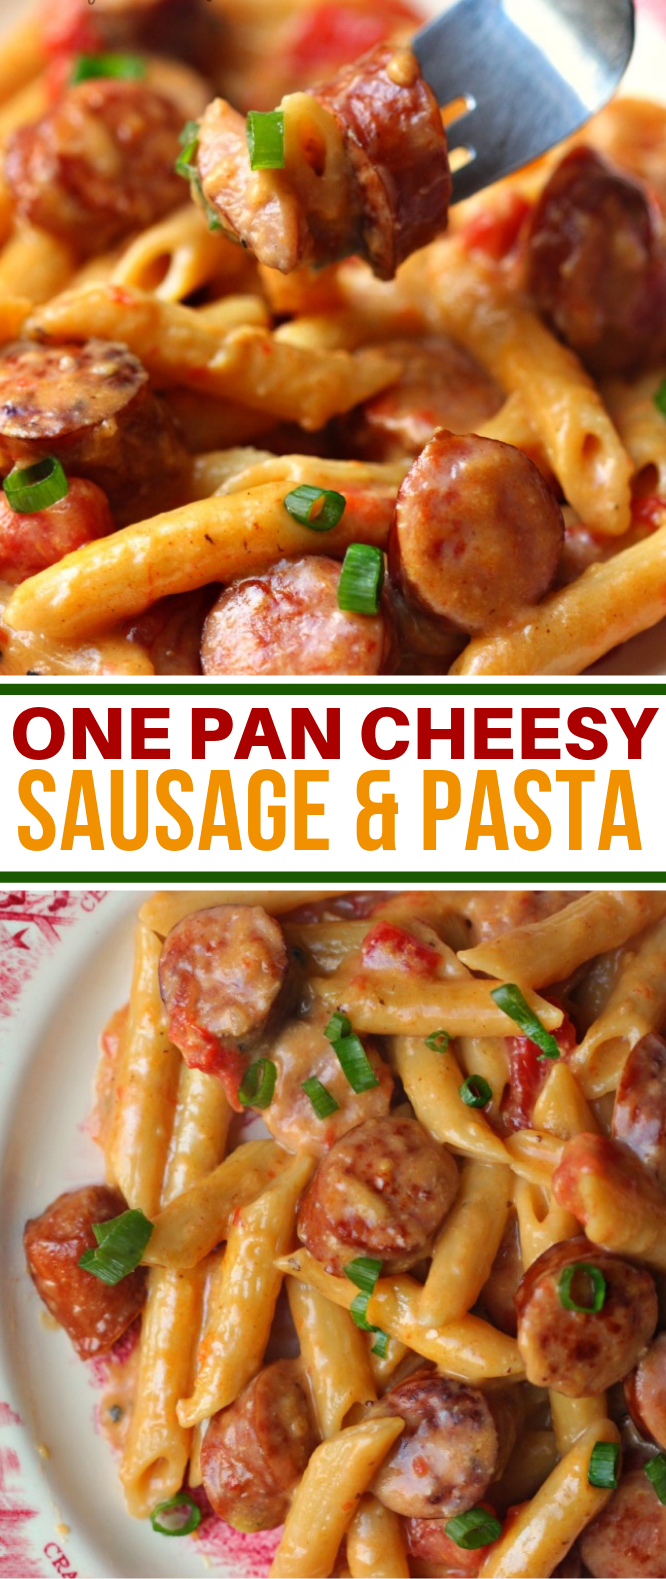 ONE PAN CHEESY SMOKED SAUSAGE & PASTA RECIPE #dinner #pastarecipe Tbsp olive oil  1 lb sausage  ½ cup diced onion  1 Tbsp minced garlic  2 cups Chicken Broth  1 (14 oz) can diced tomatoes  ½ cup milk  8 oz dry pasta  ½ teaspoon salt and pepper, each  2 cup shredded Cheddar-Jack cheese  ¼ tsp of Red Pepper Flakes  ⅓ cup chopped scallions, for garnish #sausagechickenrecipes